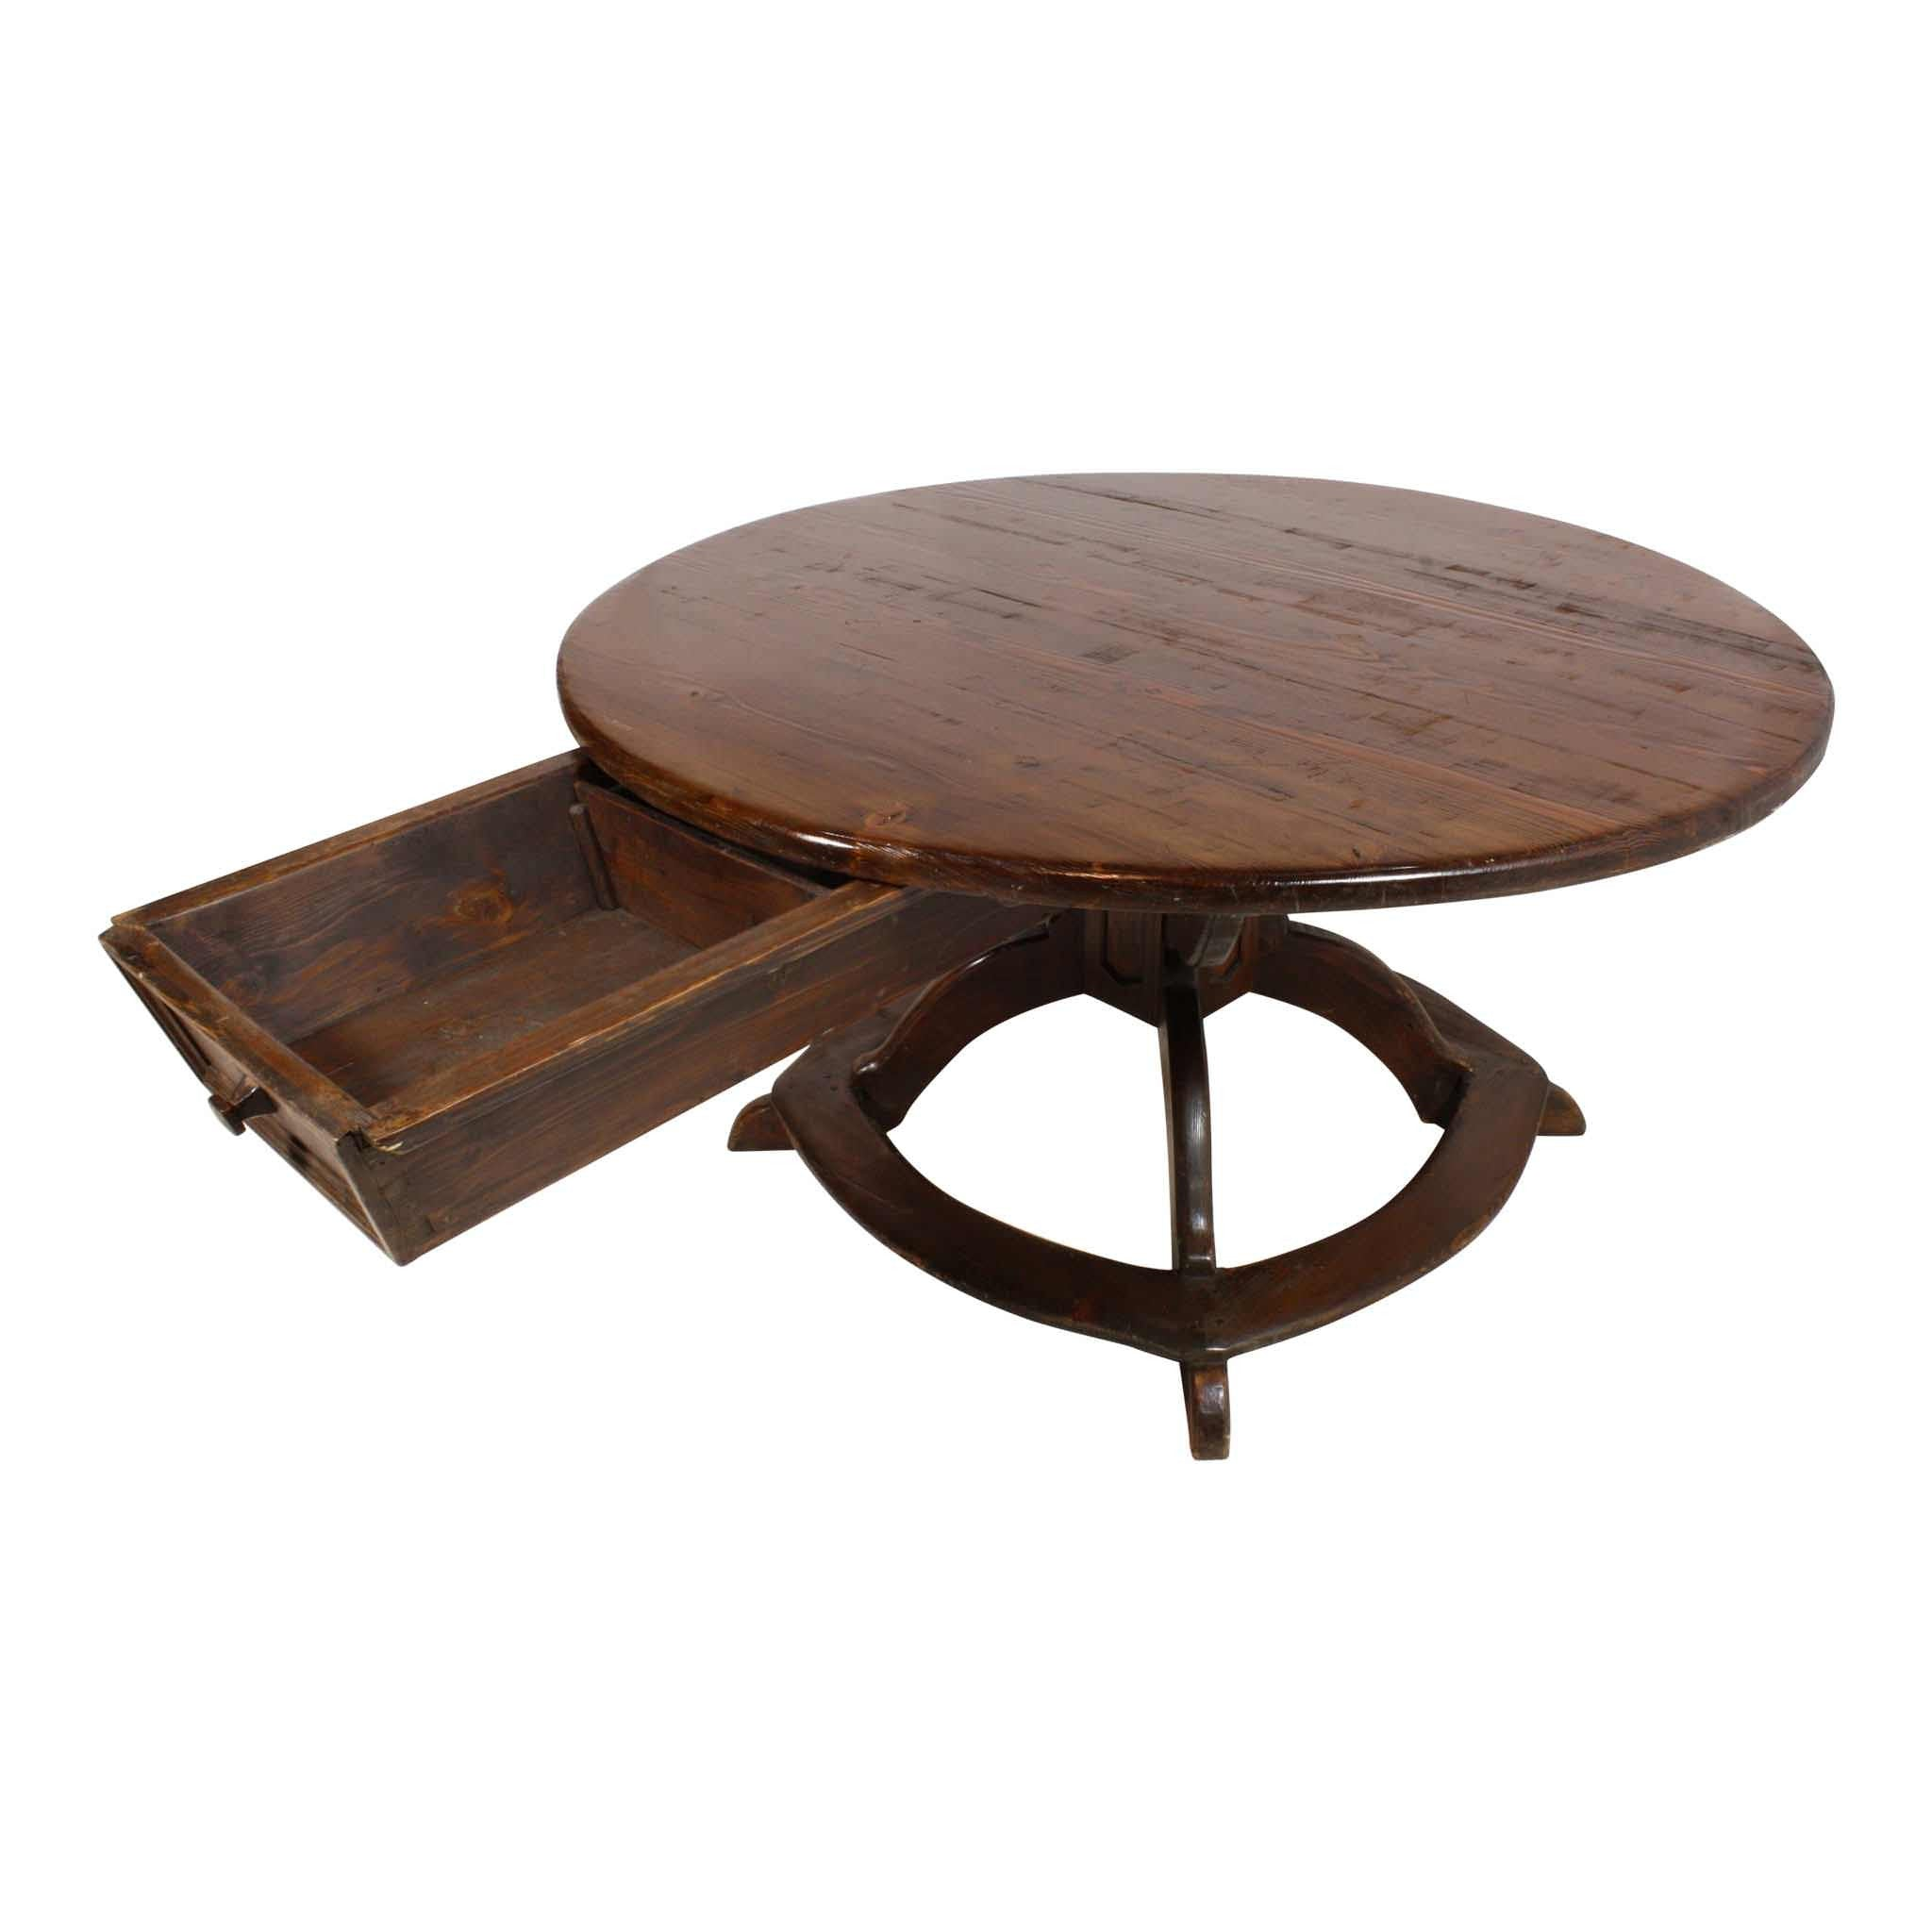 Round Trestle Table With Two Way Drawer